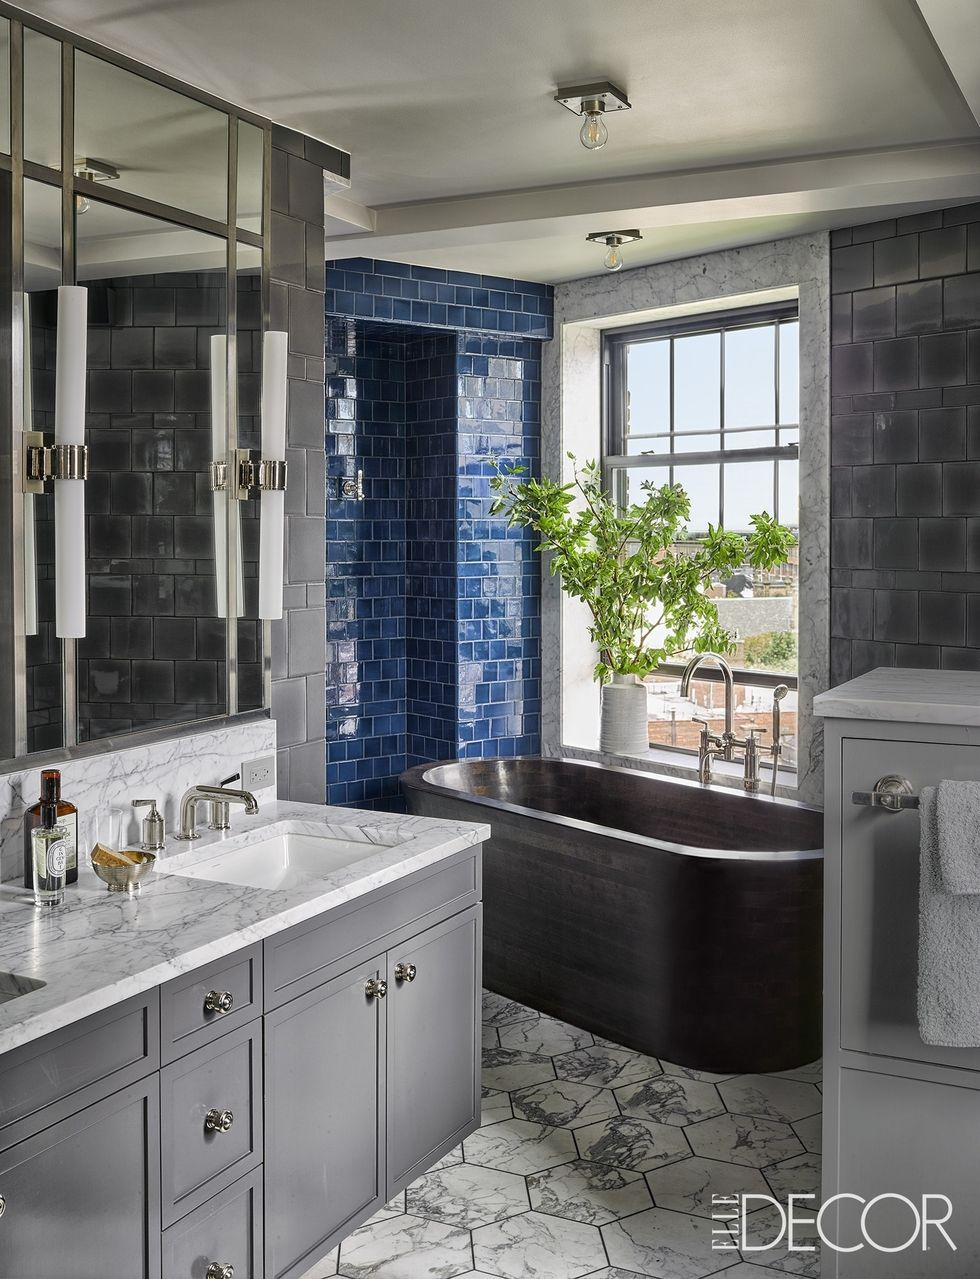 Captivating 80 Best Bathroom Design Ideas   Gallery Of Stylish Small U0026 Large Bathrooms